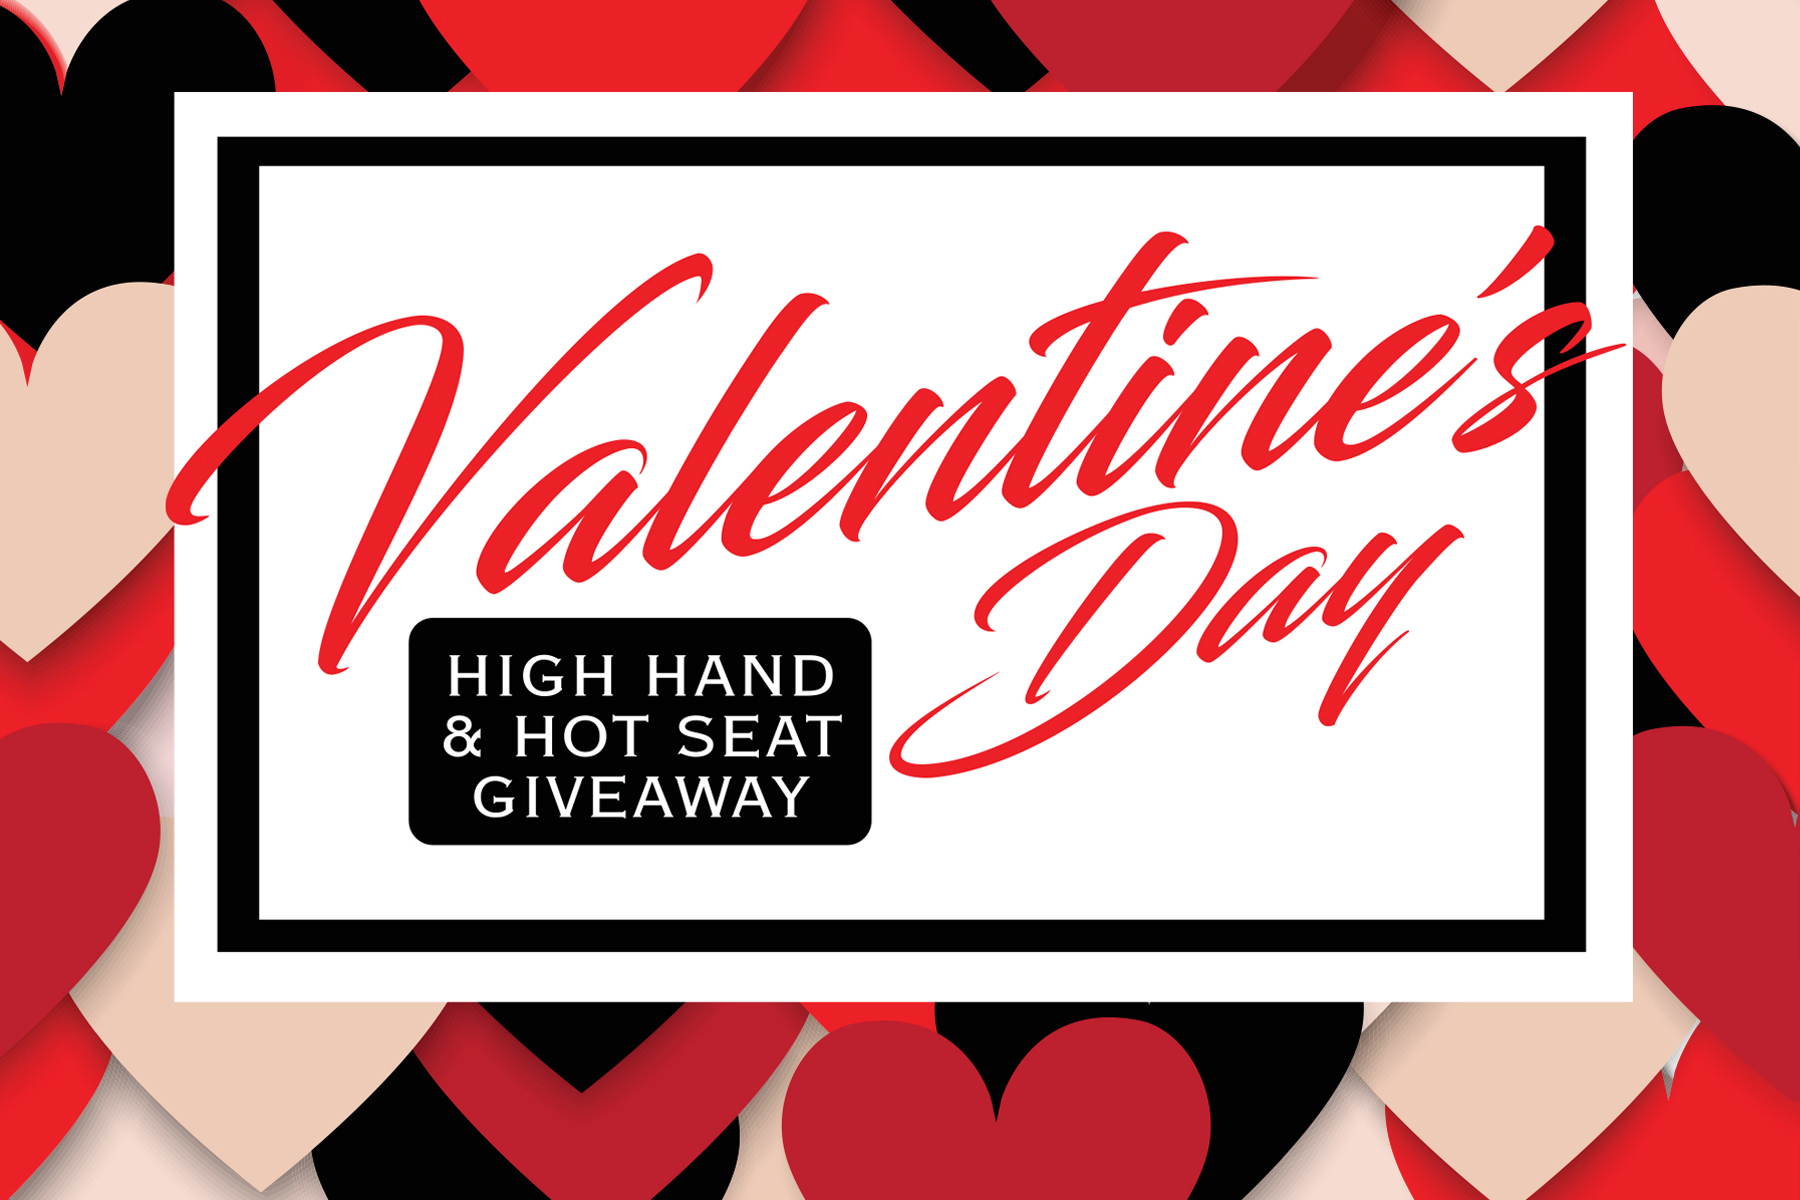 Valentine's Day High Hand & Hot Seat Giveaway